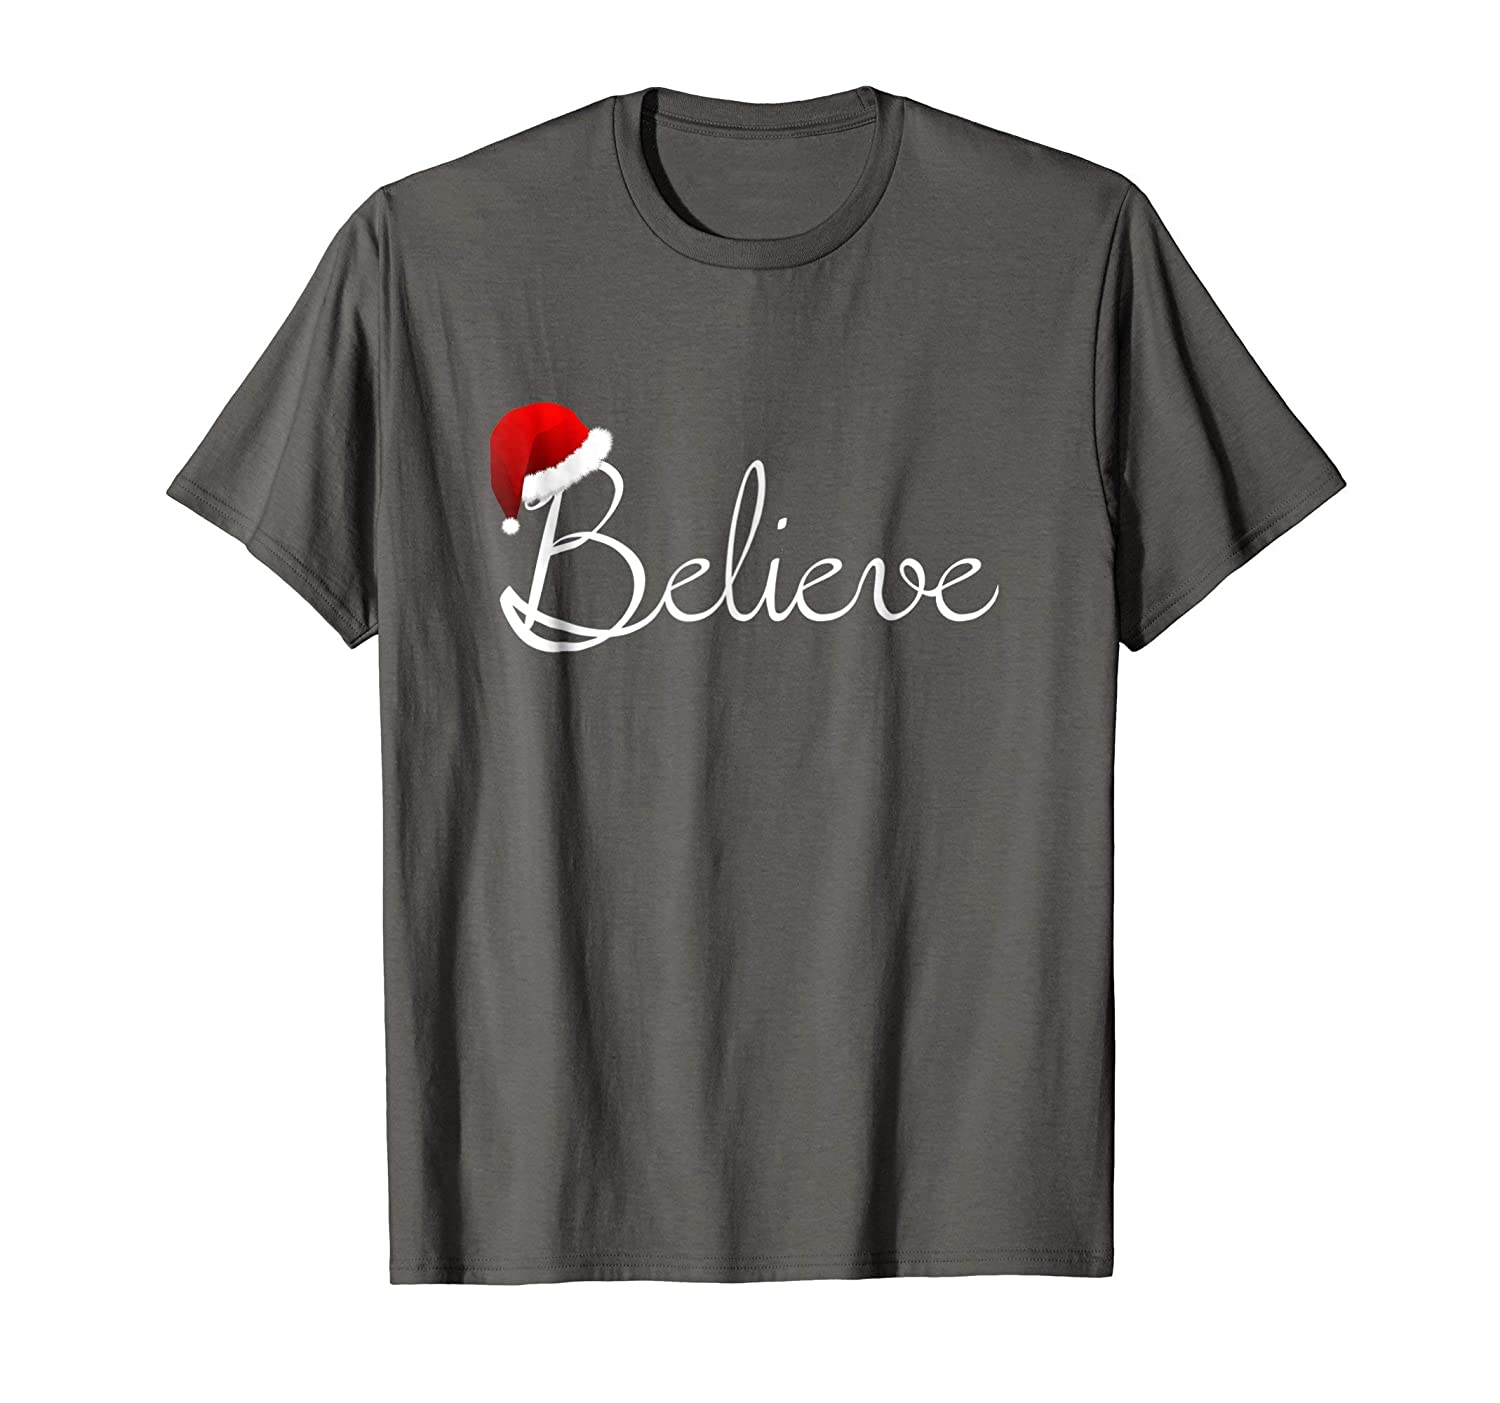 Amazon.com: Believe Christmas Shirt - Best Santa Christmas Tee: Clothing